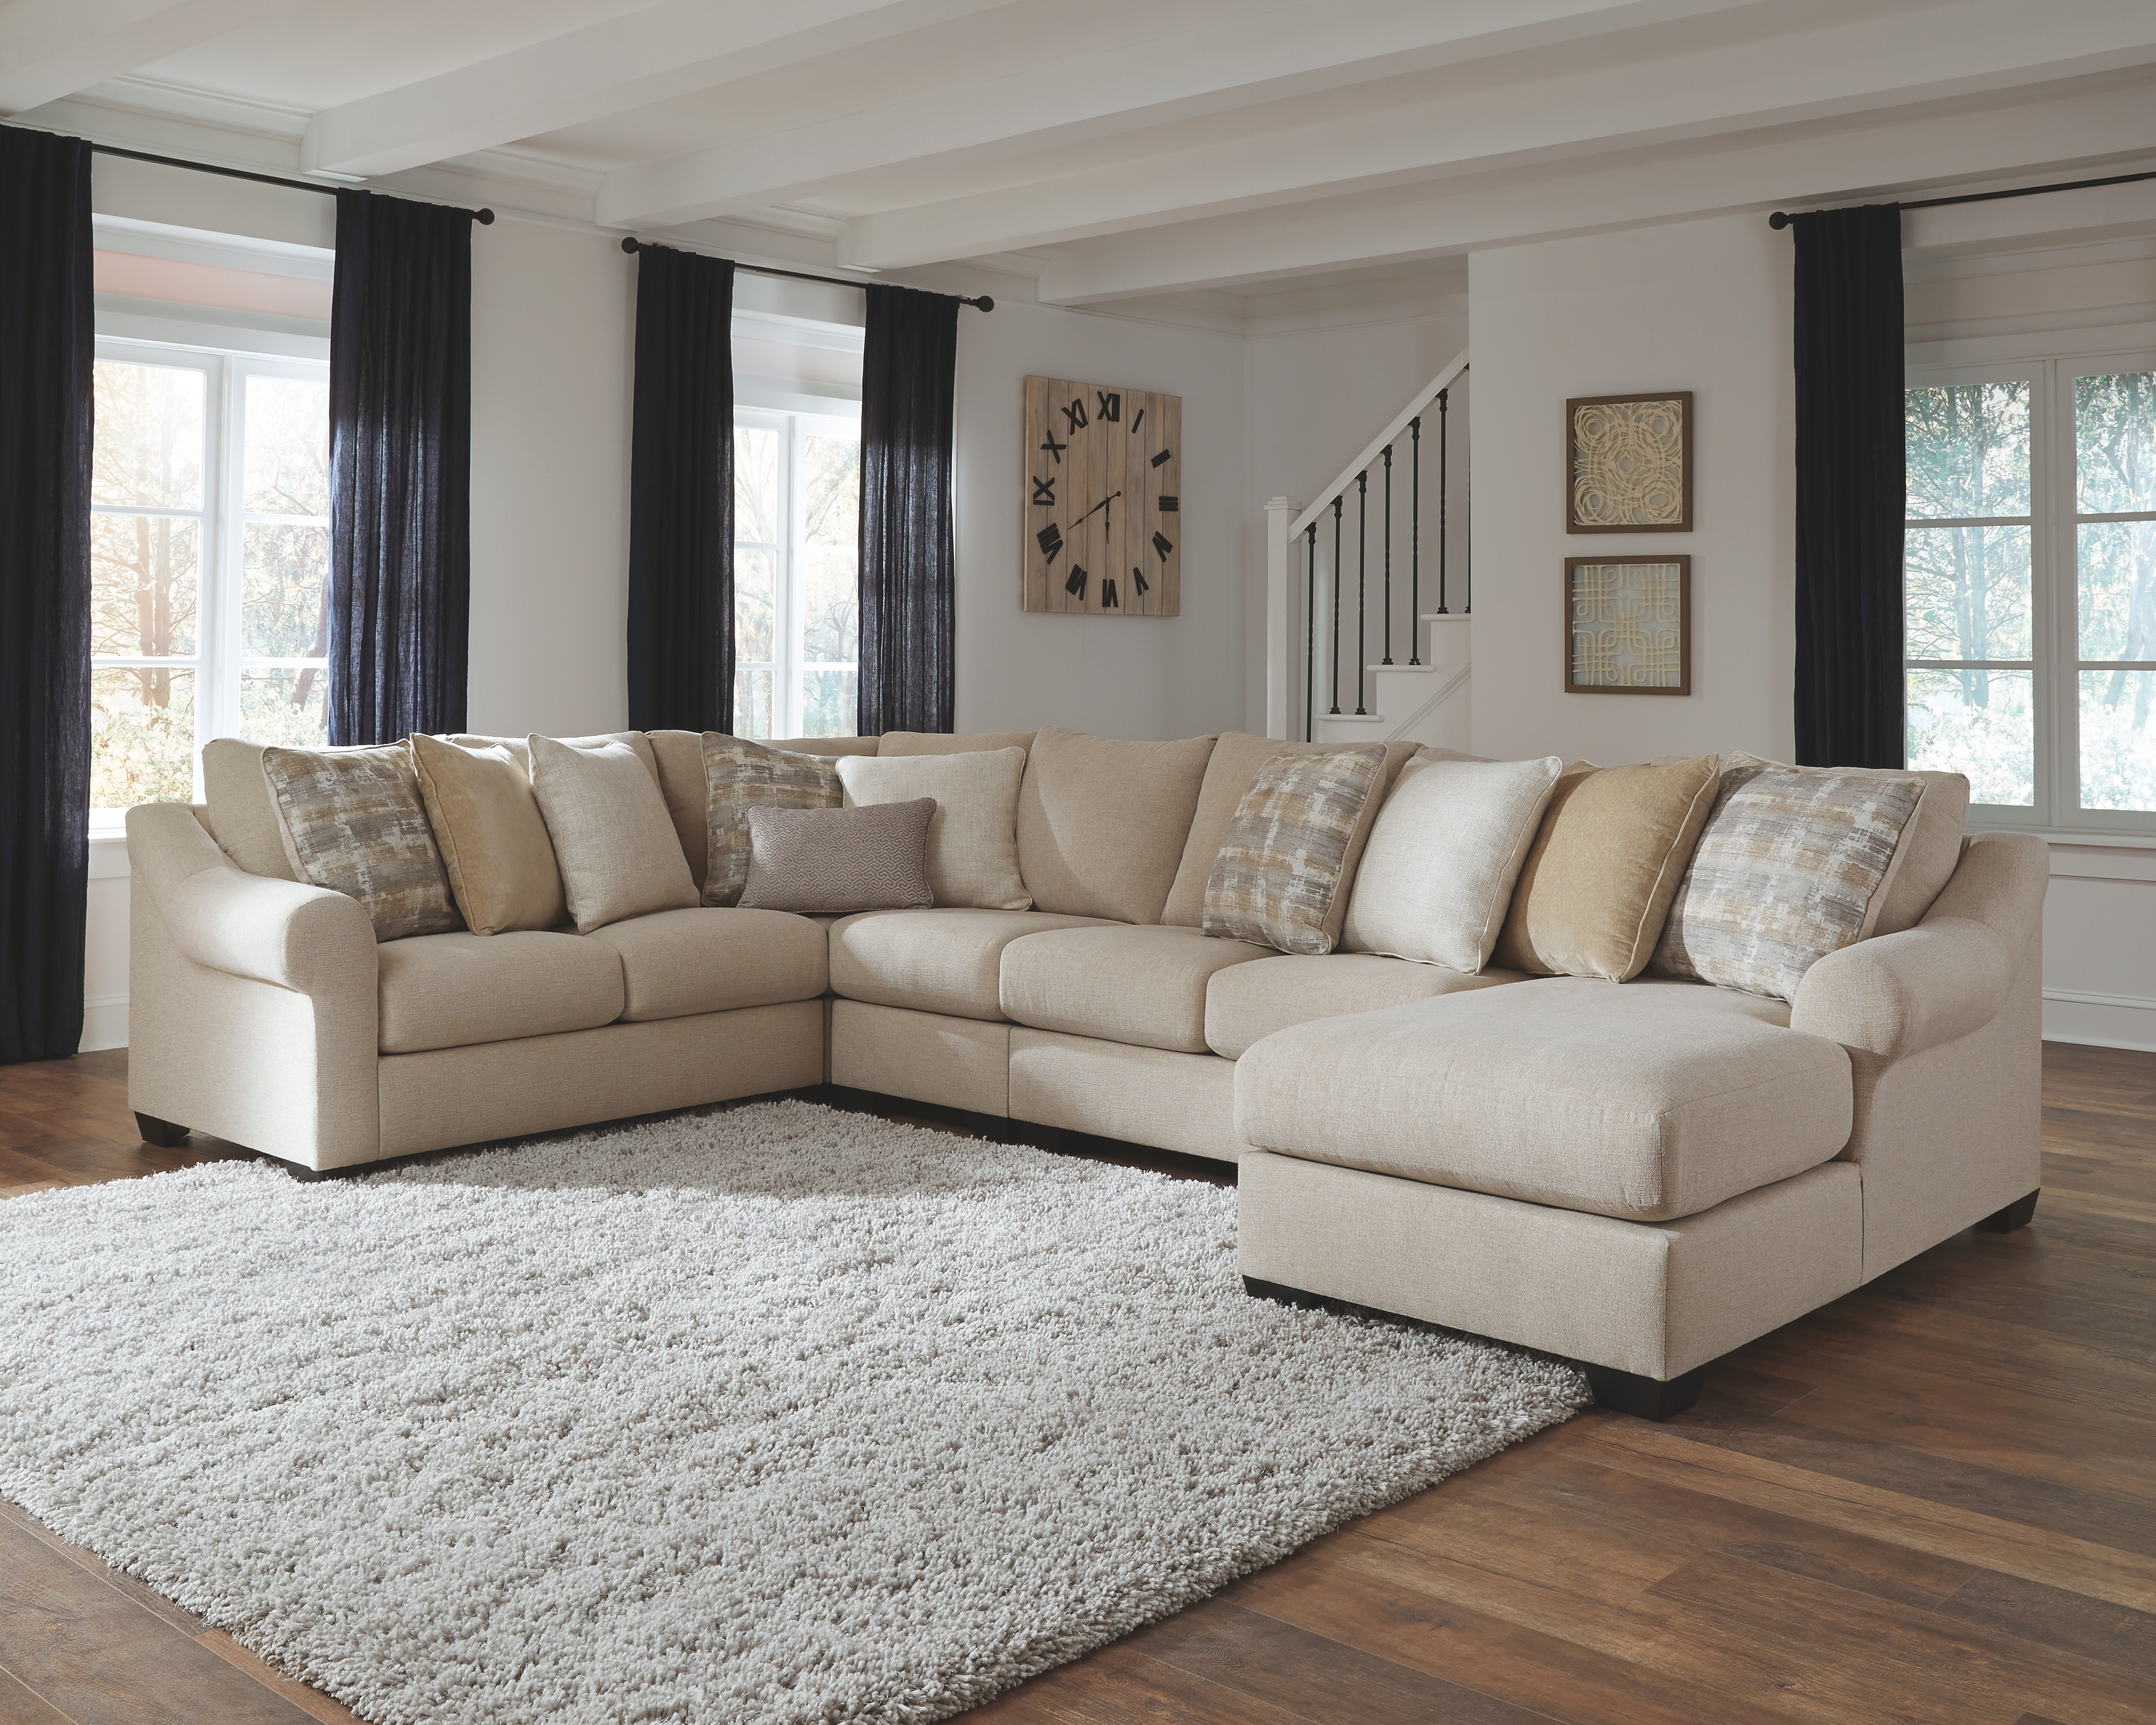 Ingleside 5 Piece Sectional With Chaise By Benchcraft The Furniture Mall